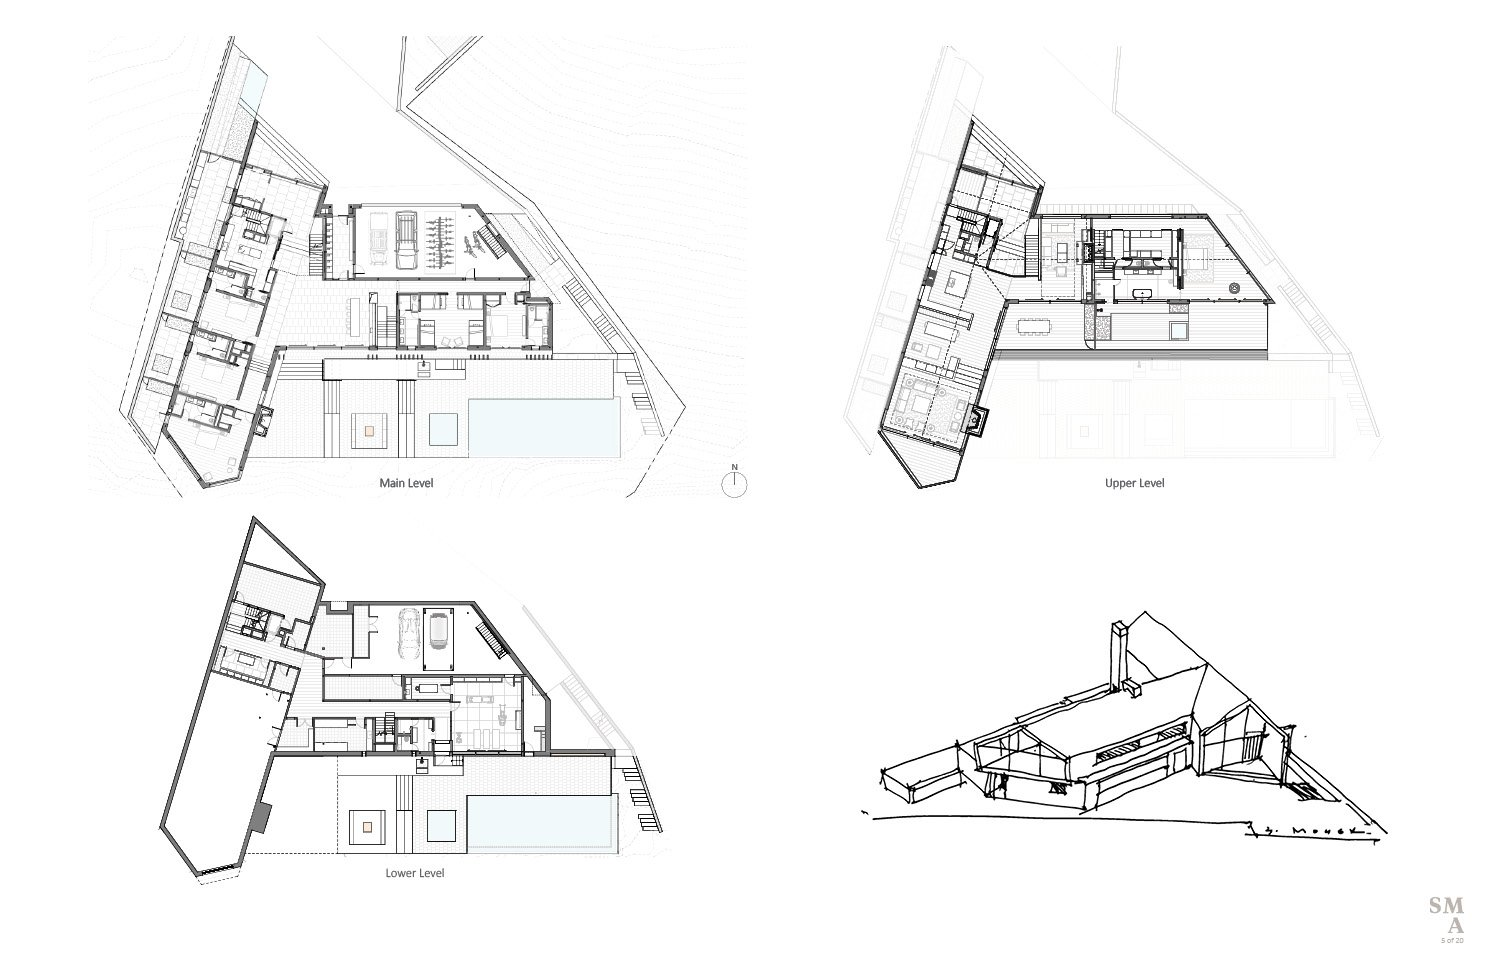 Lot 4 - Plan views and hand sketch. SMA Design Team & Consultants}